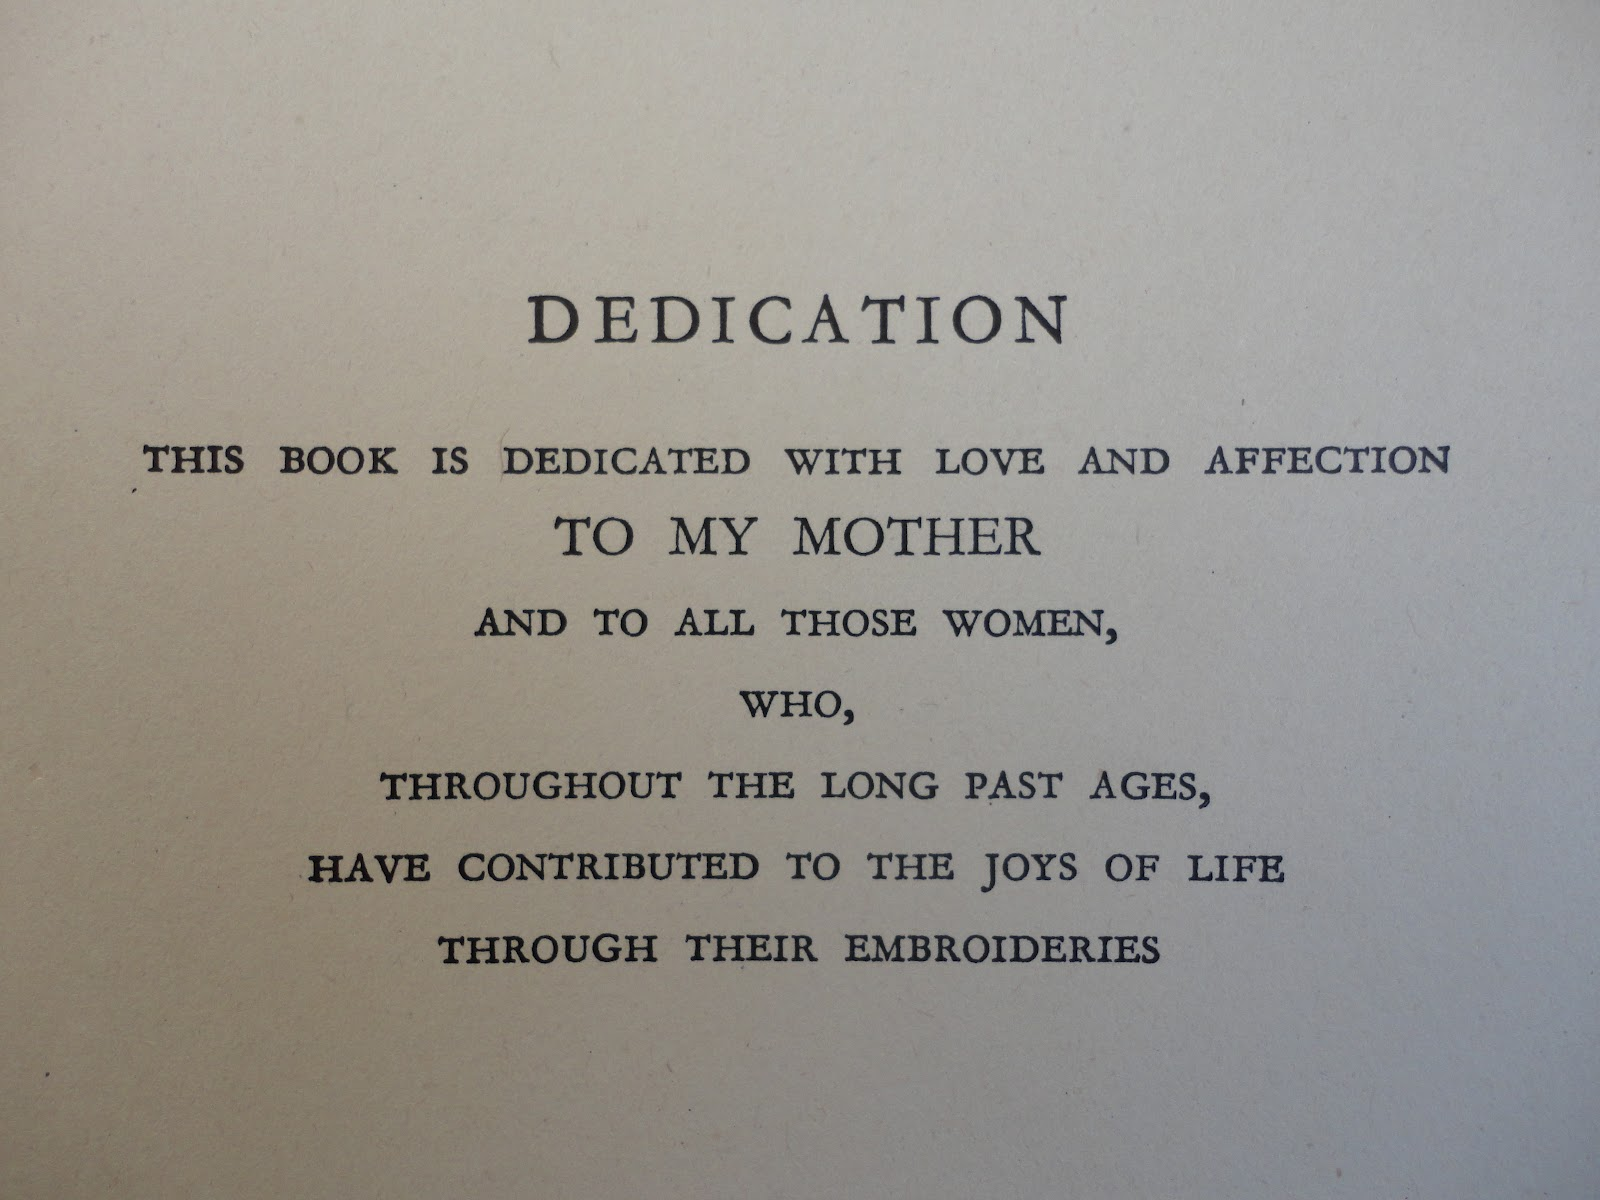 Dedication wording thesis